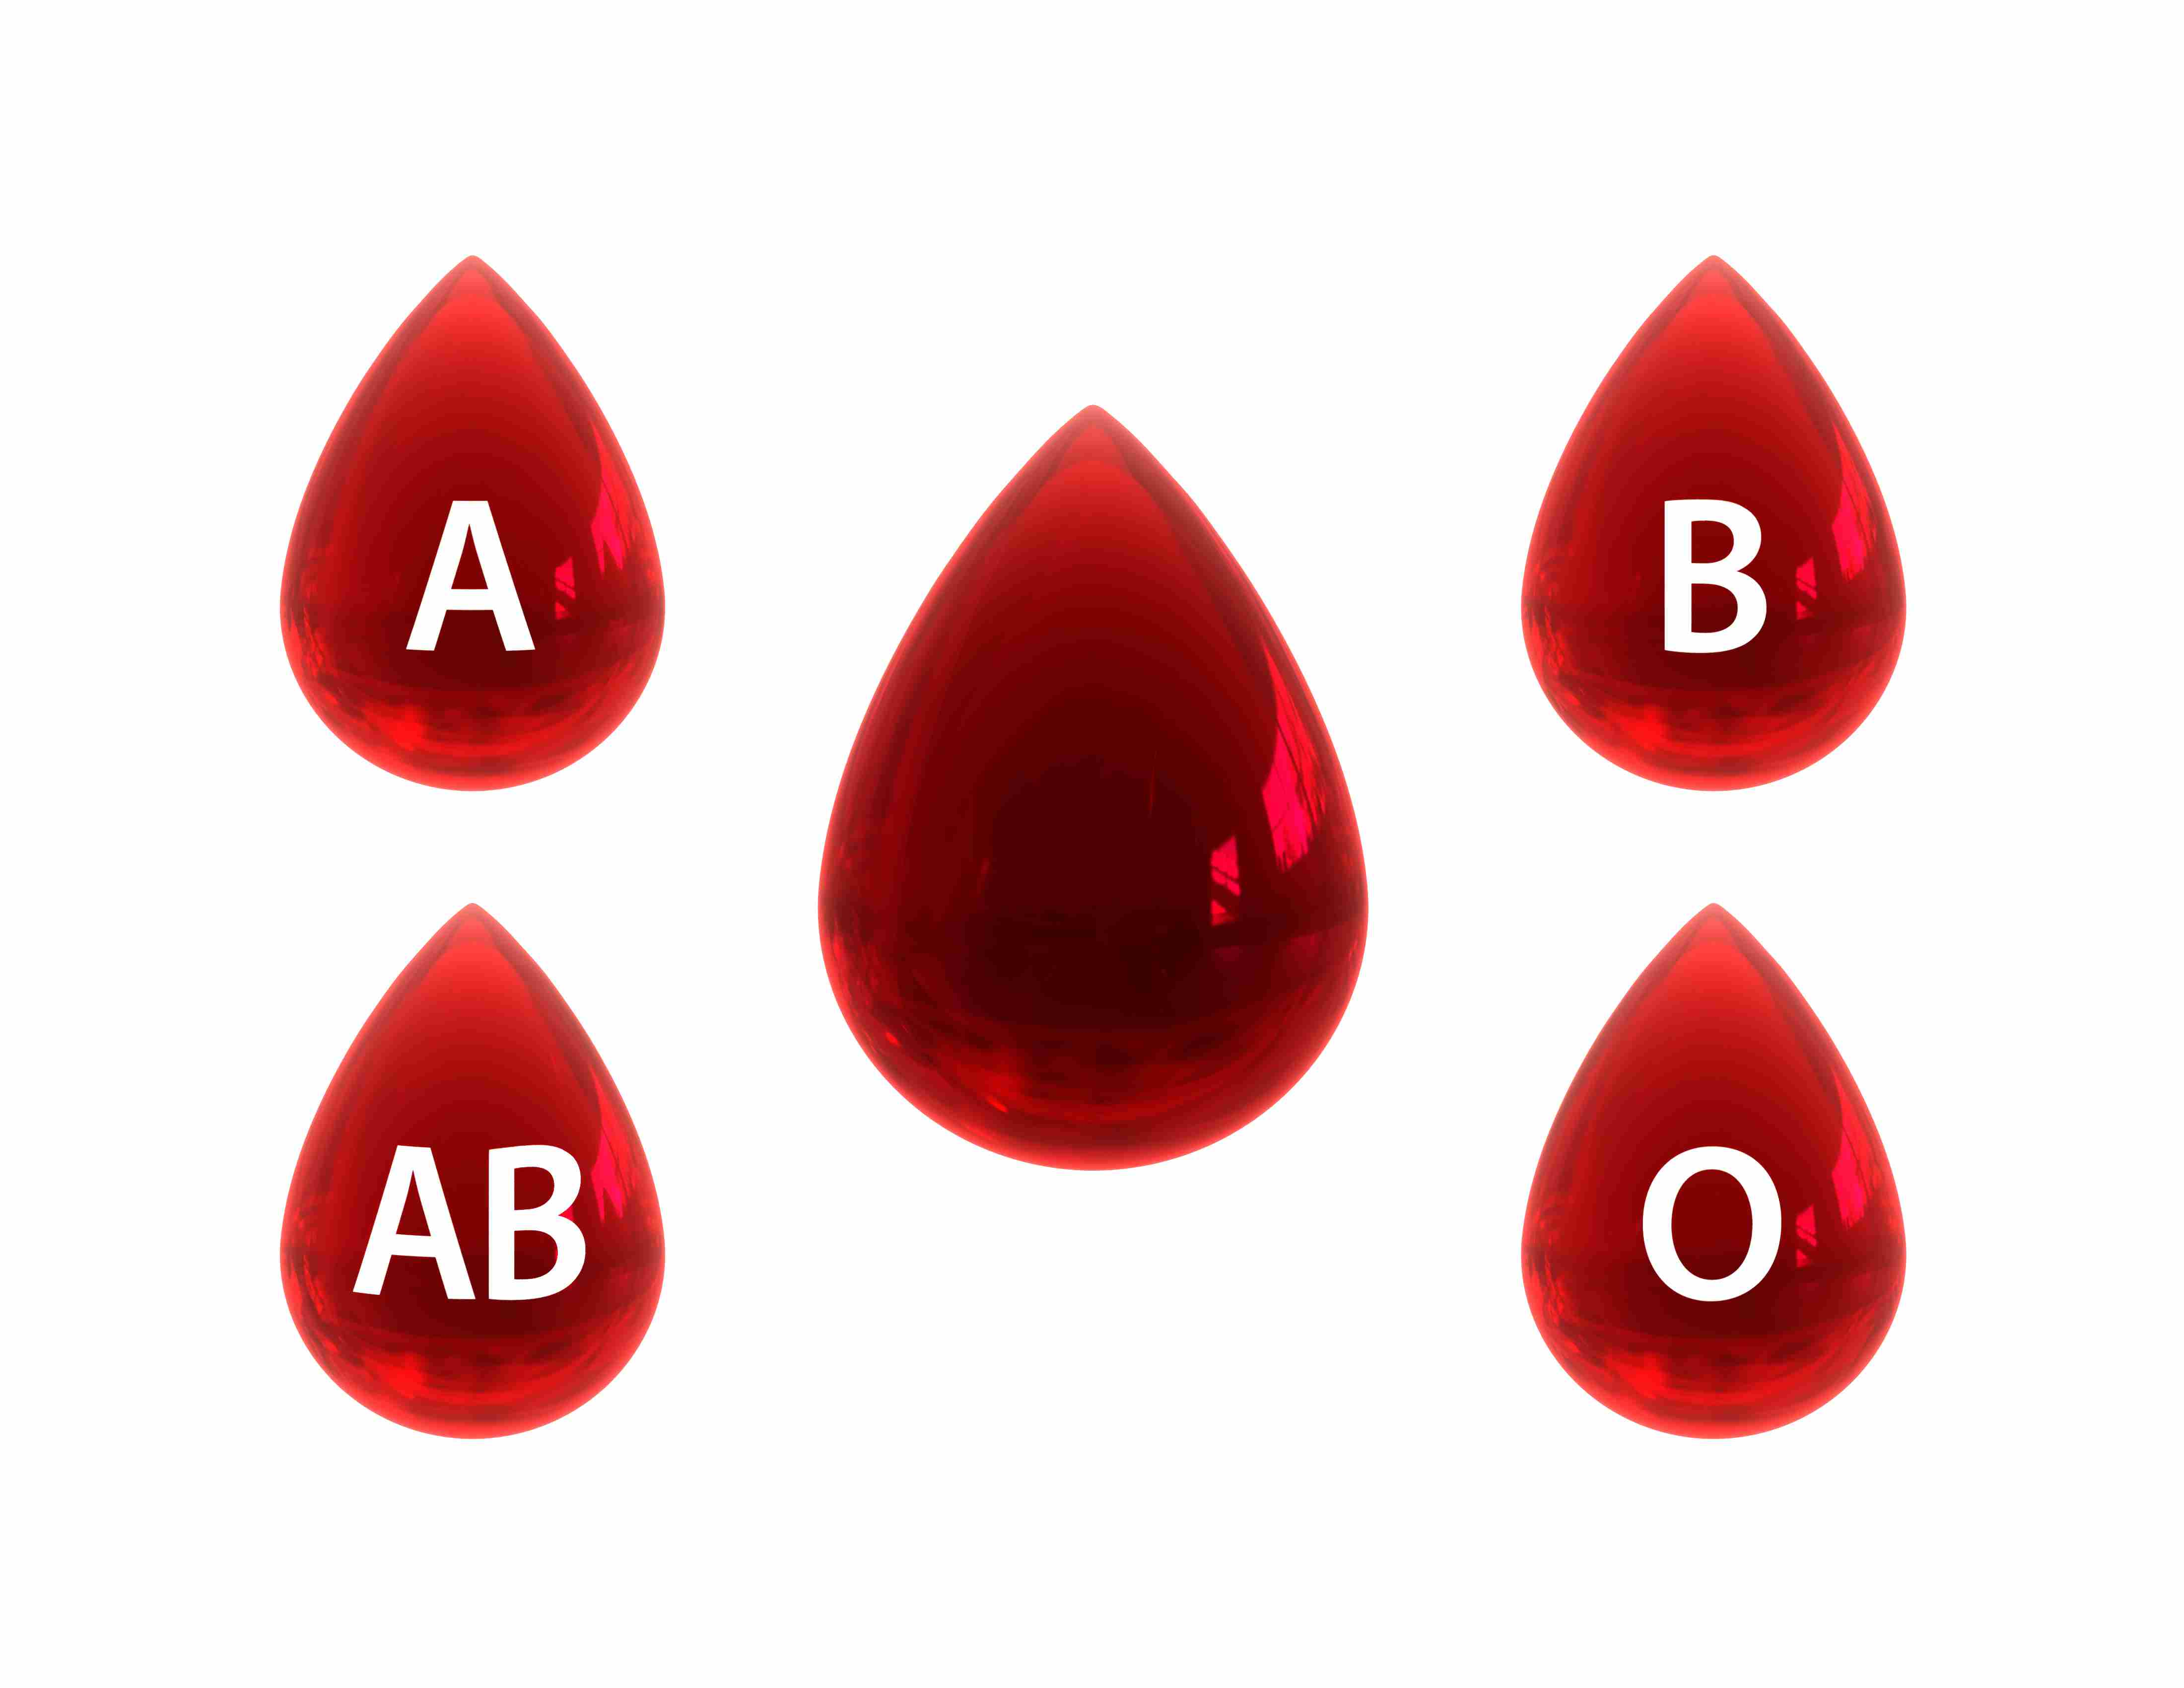 Some Blood Types Associated With Higher Risk Of Heart